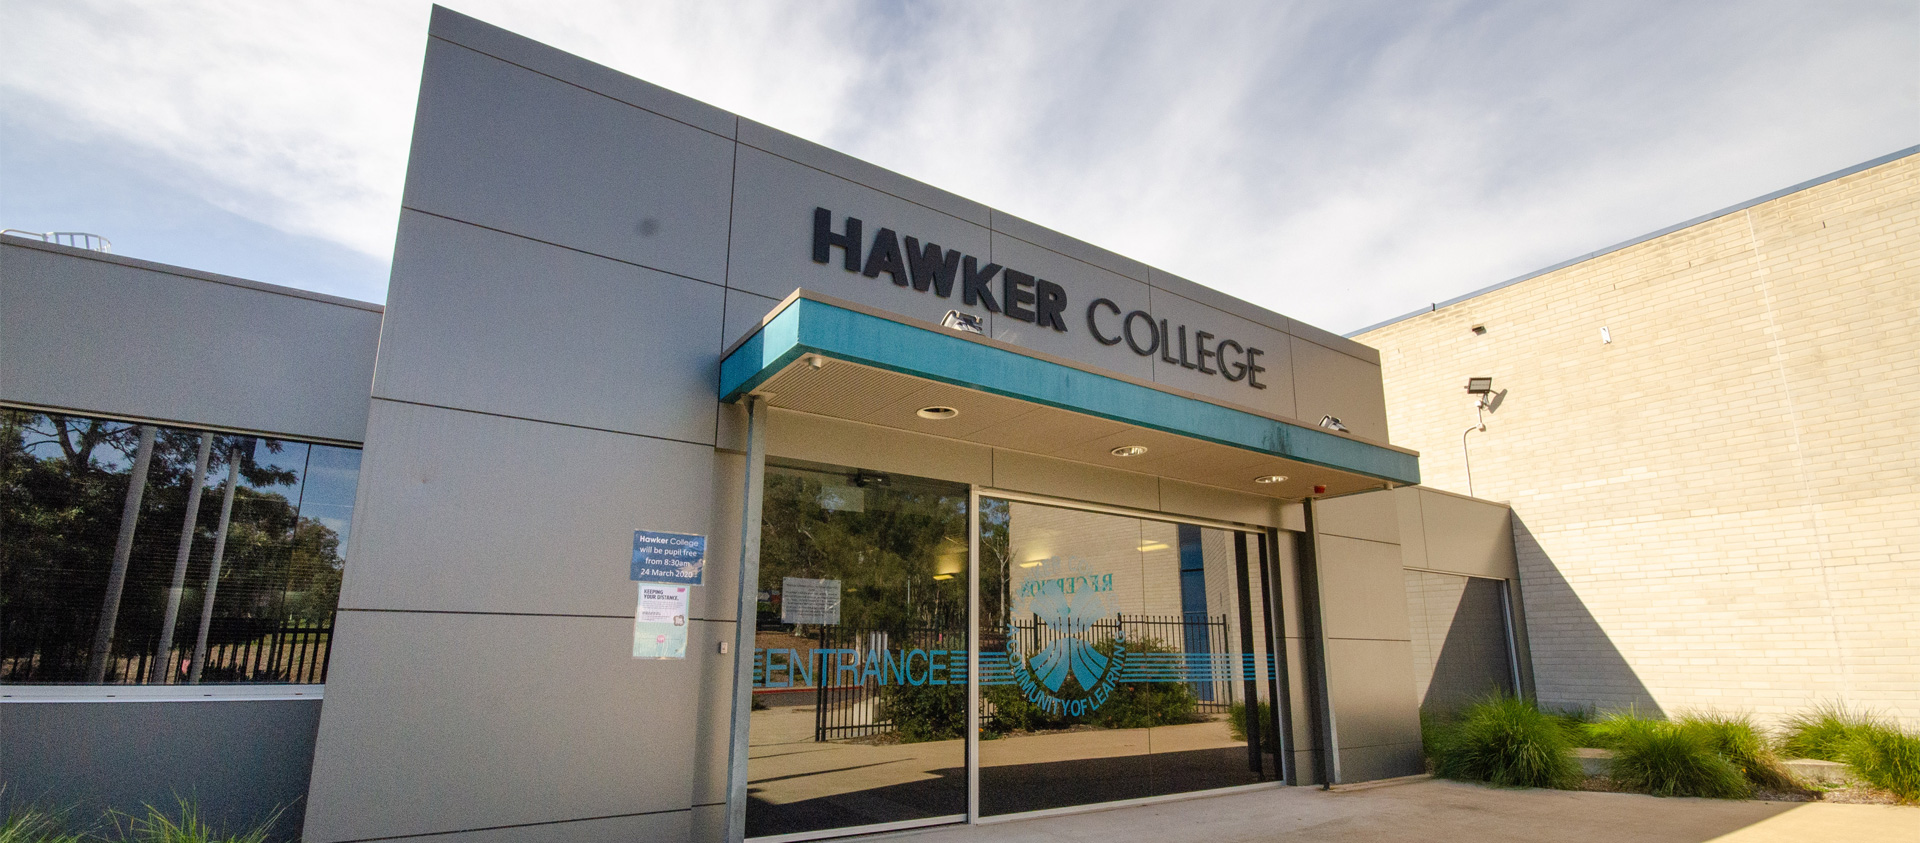 Hawker College Entrance